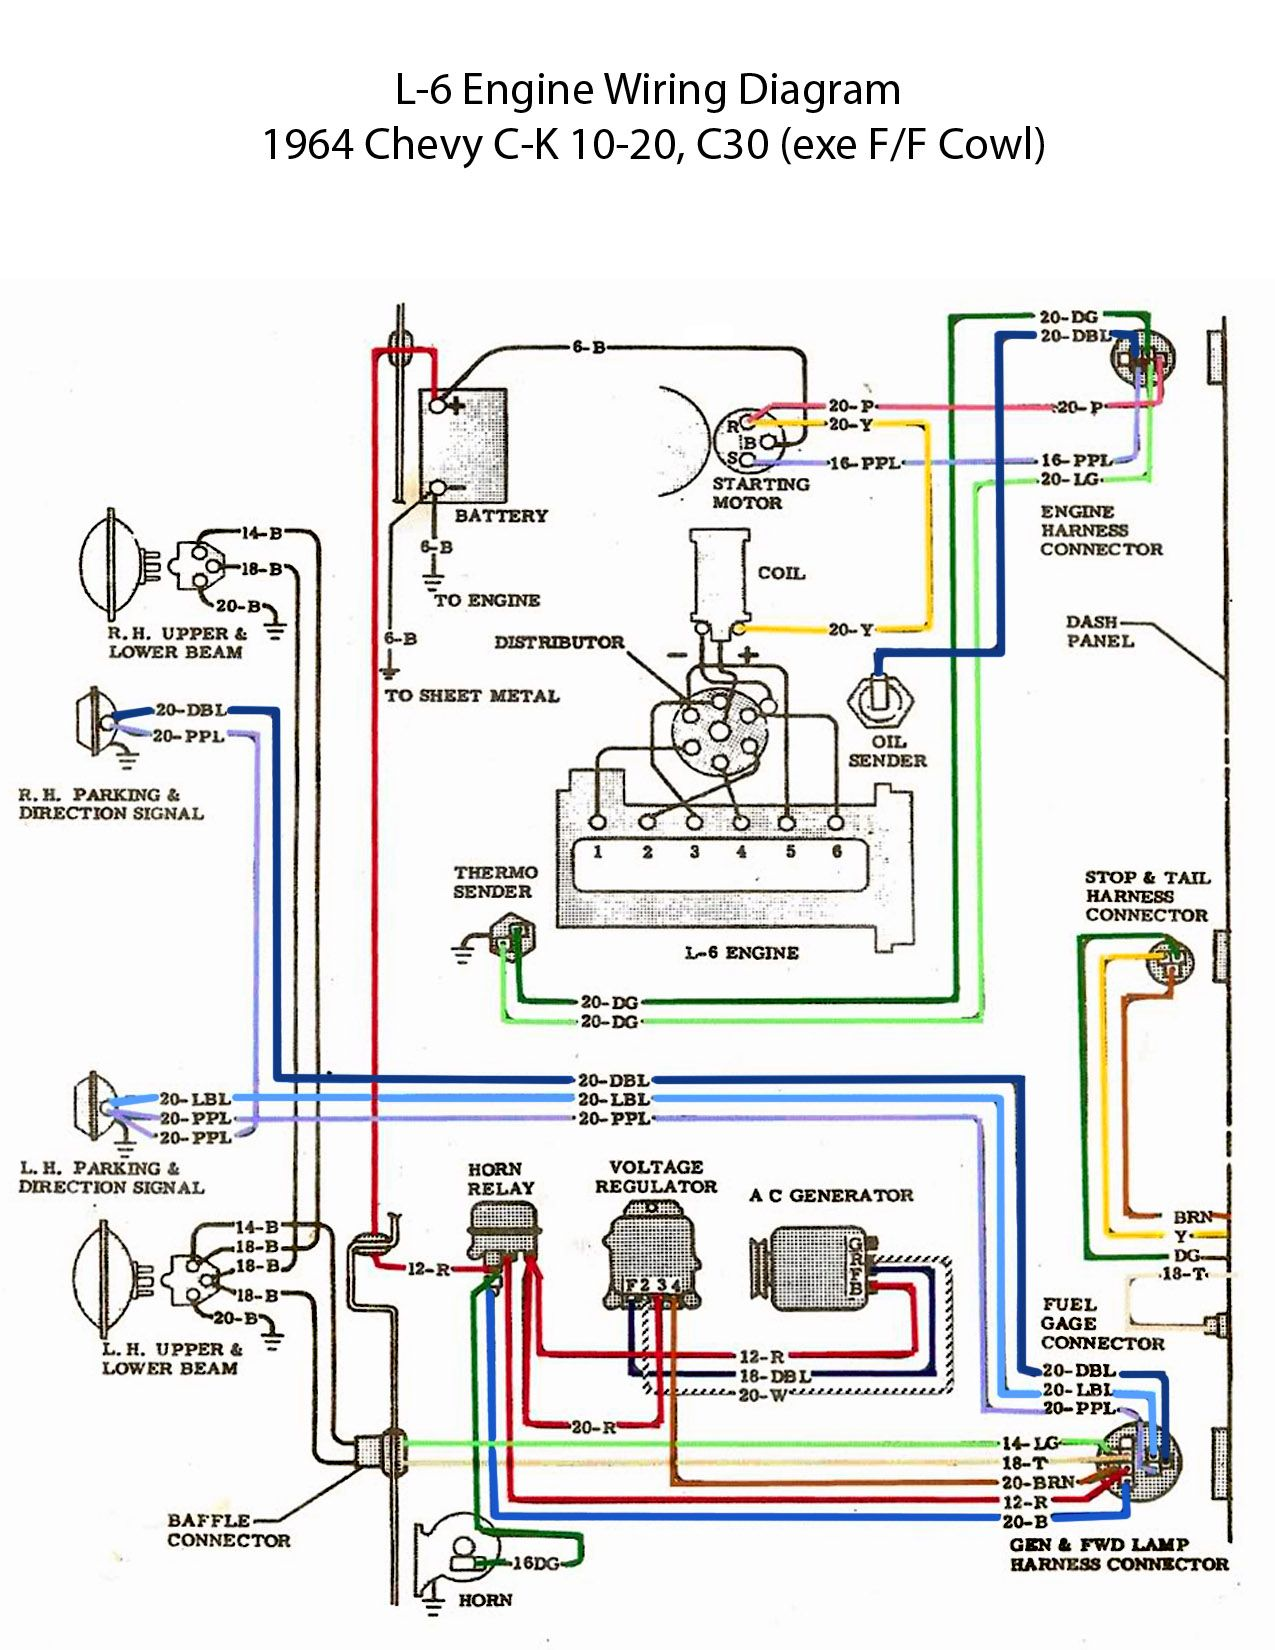 simon cat 6 wiring diagram wiring diagram simon cat 6 wiring diagram wiring libraryelectric l 6 engine wiring diagram 1954 chevy truck